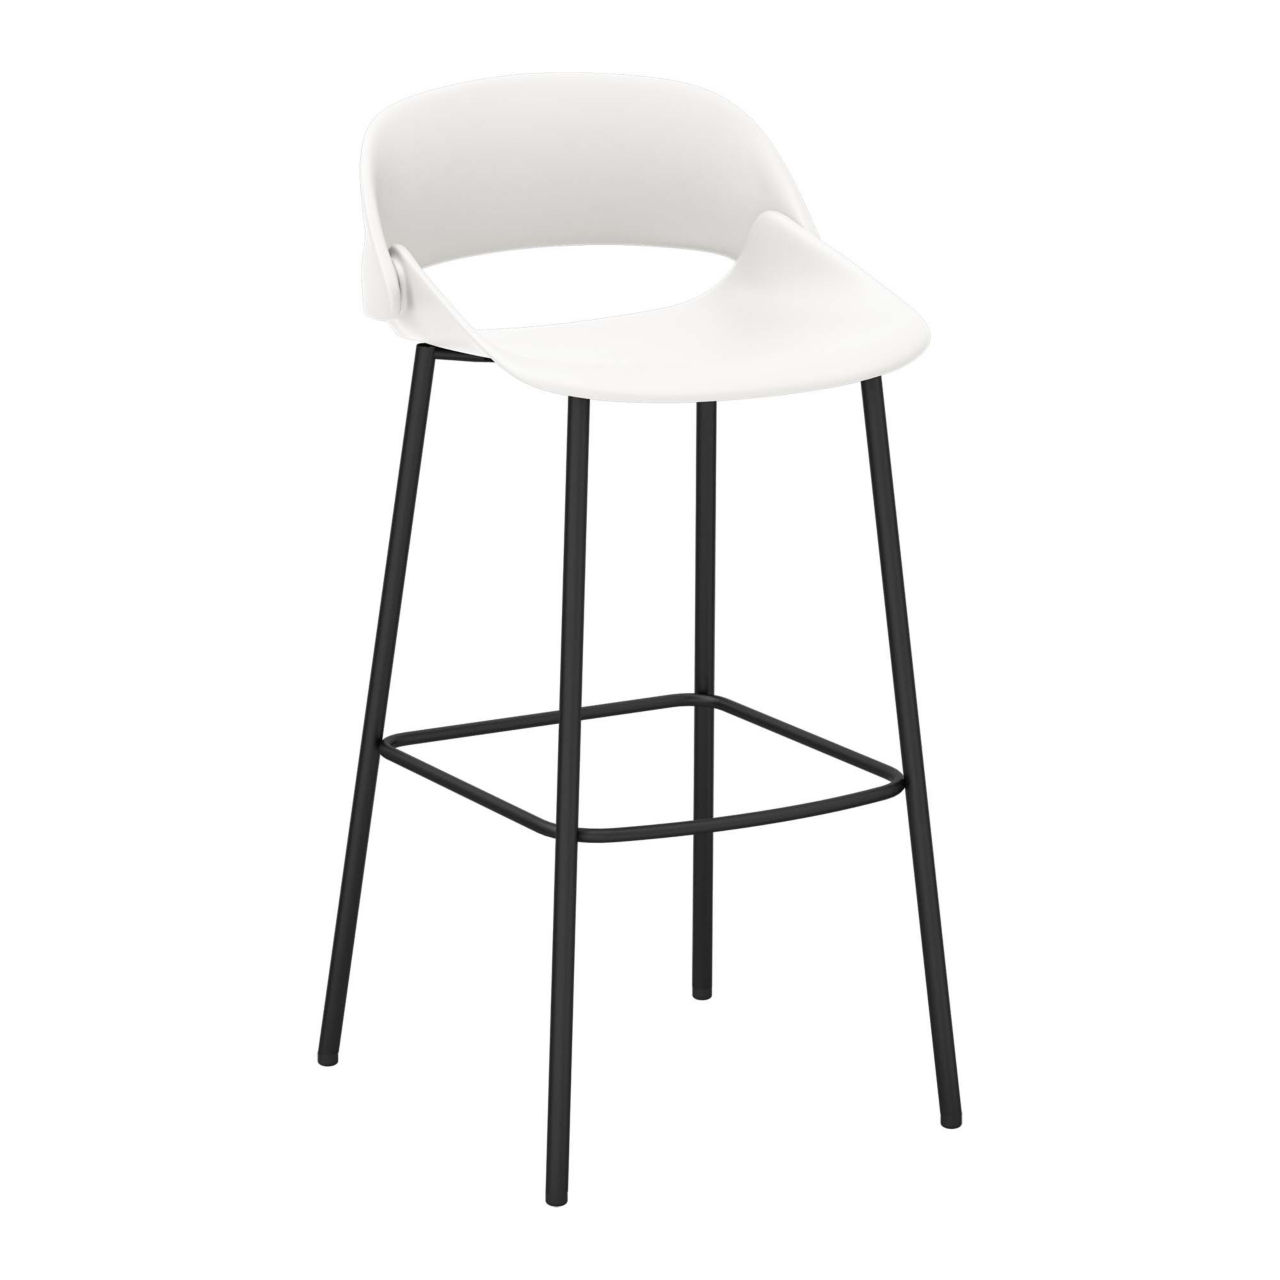 Irma Bar Stool in Off White by National Office Furniture